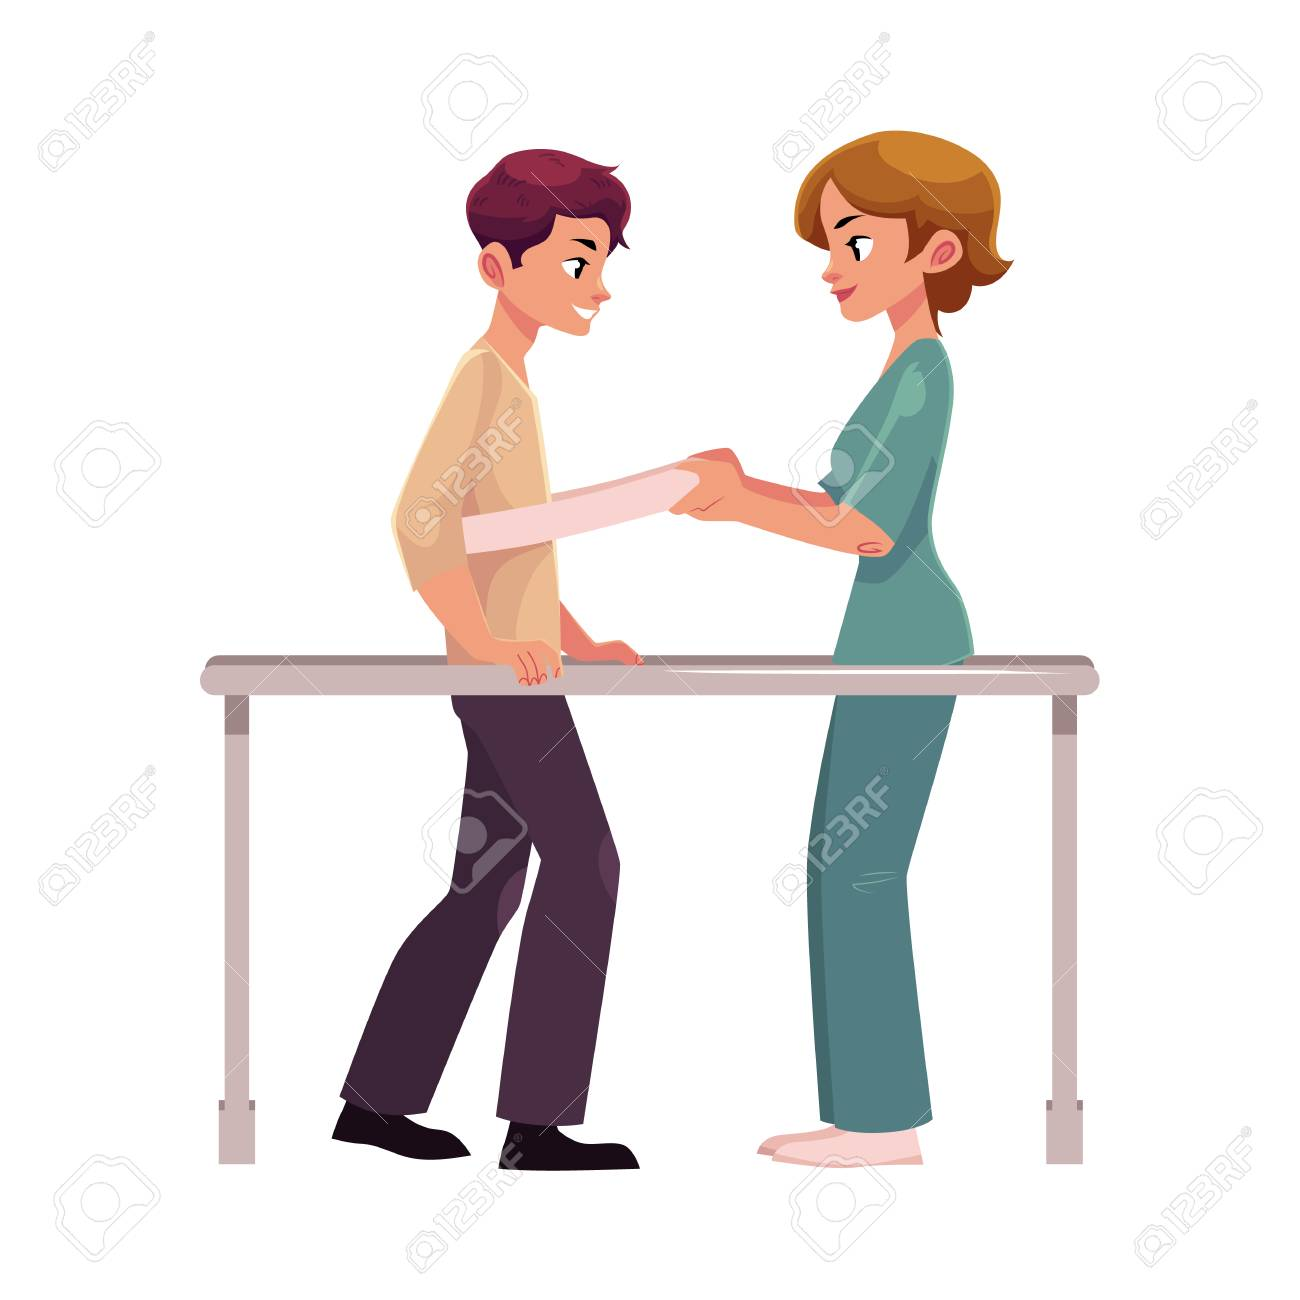 Medical Rehabilitation Physical Therapy Parallel Bars Therapist Royalty Free Cliparts Vectors And Stock Illustration Image 83141704